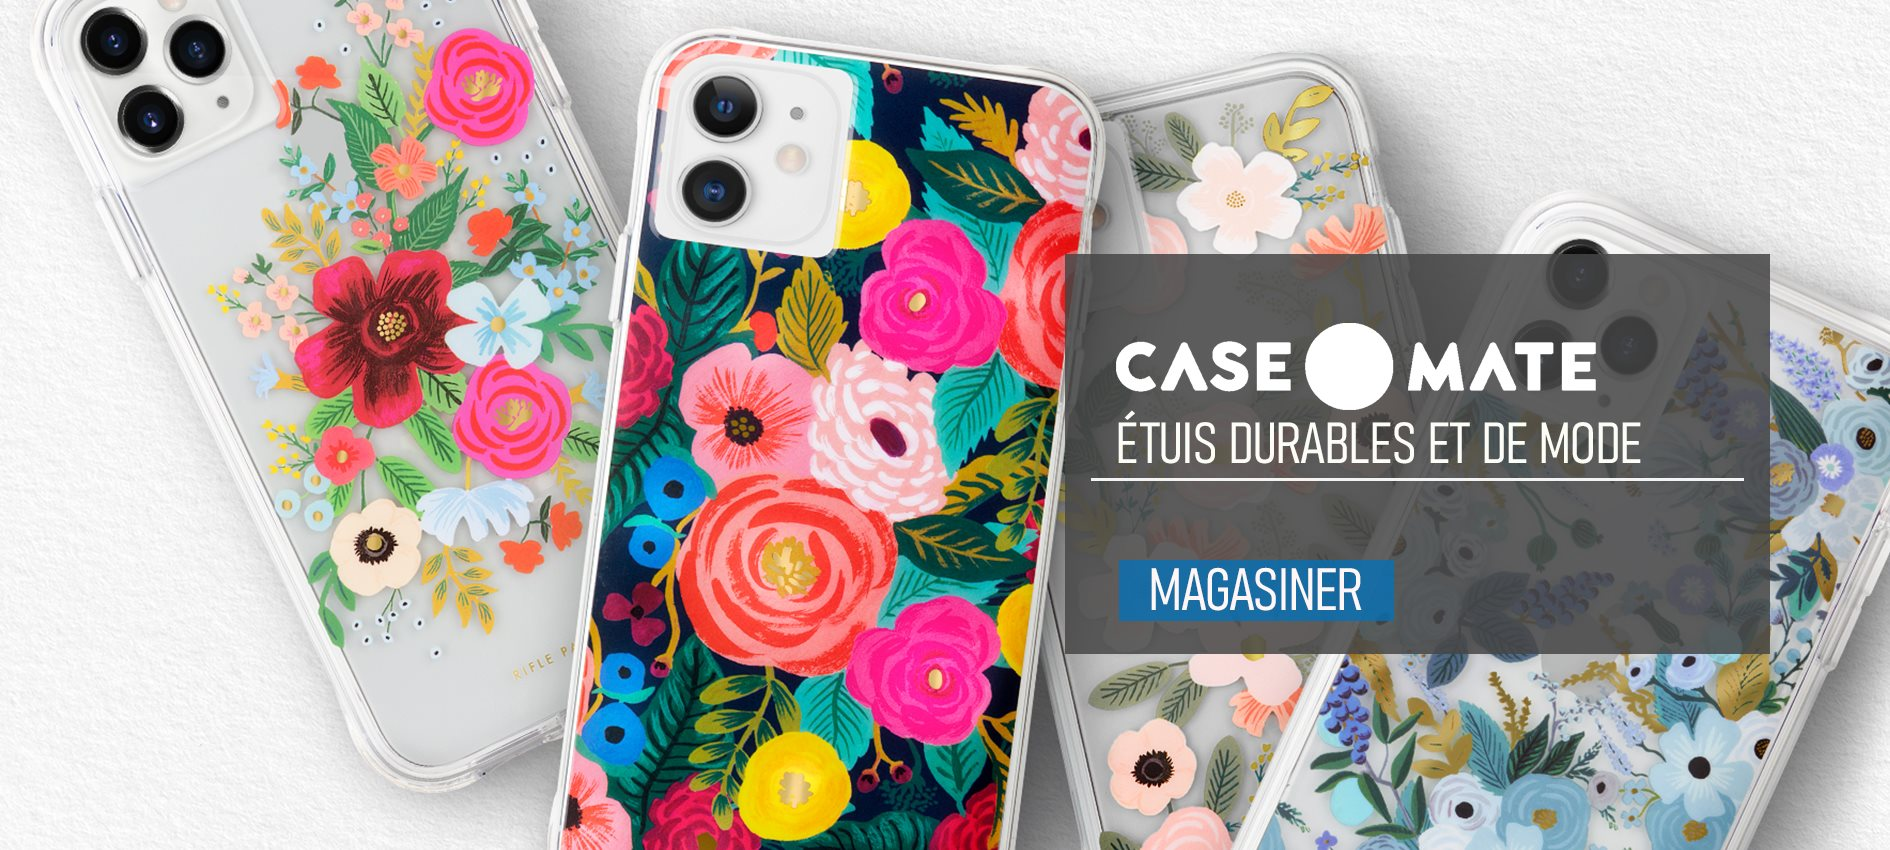 Étuis CASE-MATE durables et de mode